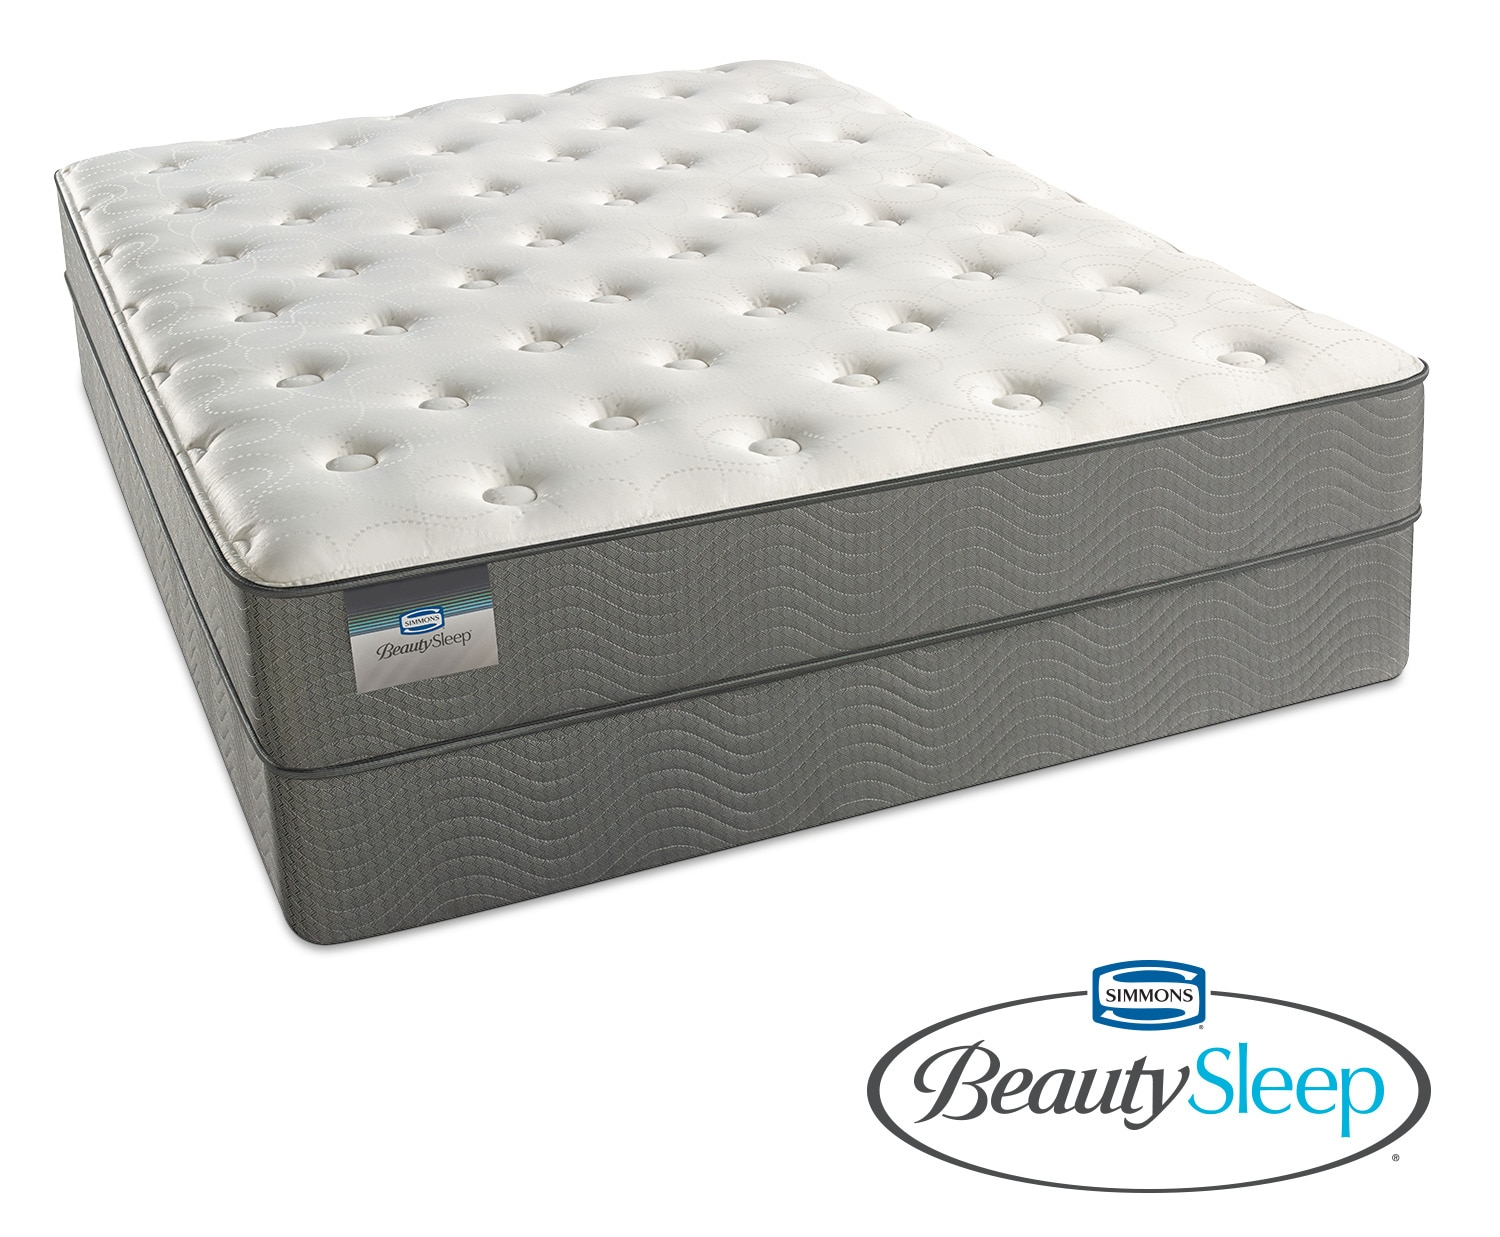 Delicieux Mattresses And Bedding   Sapphire Blue Luxury Firm Queen Mattress And  Foundation Set